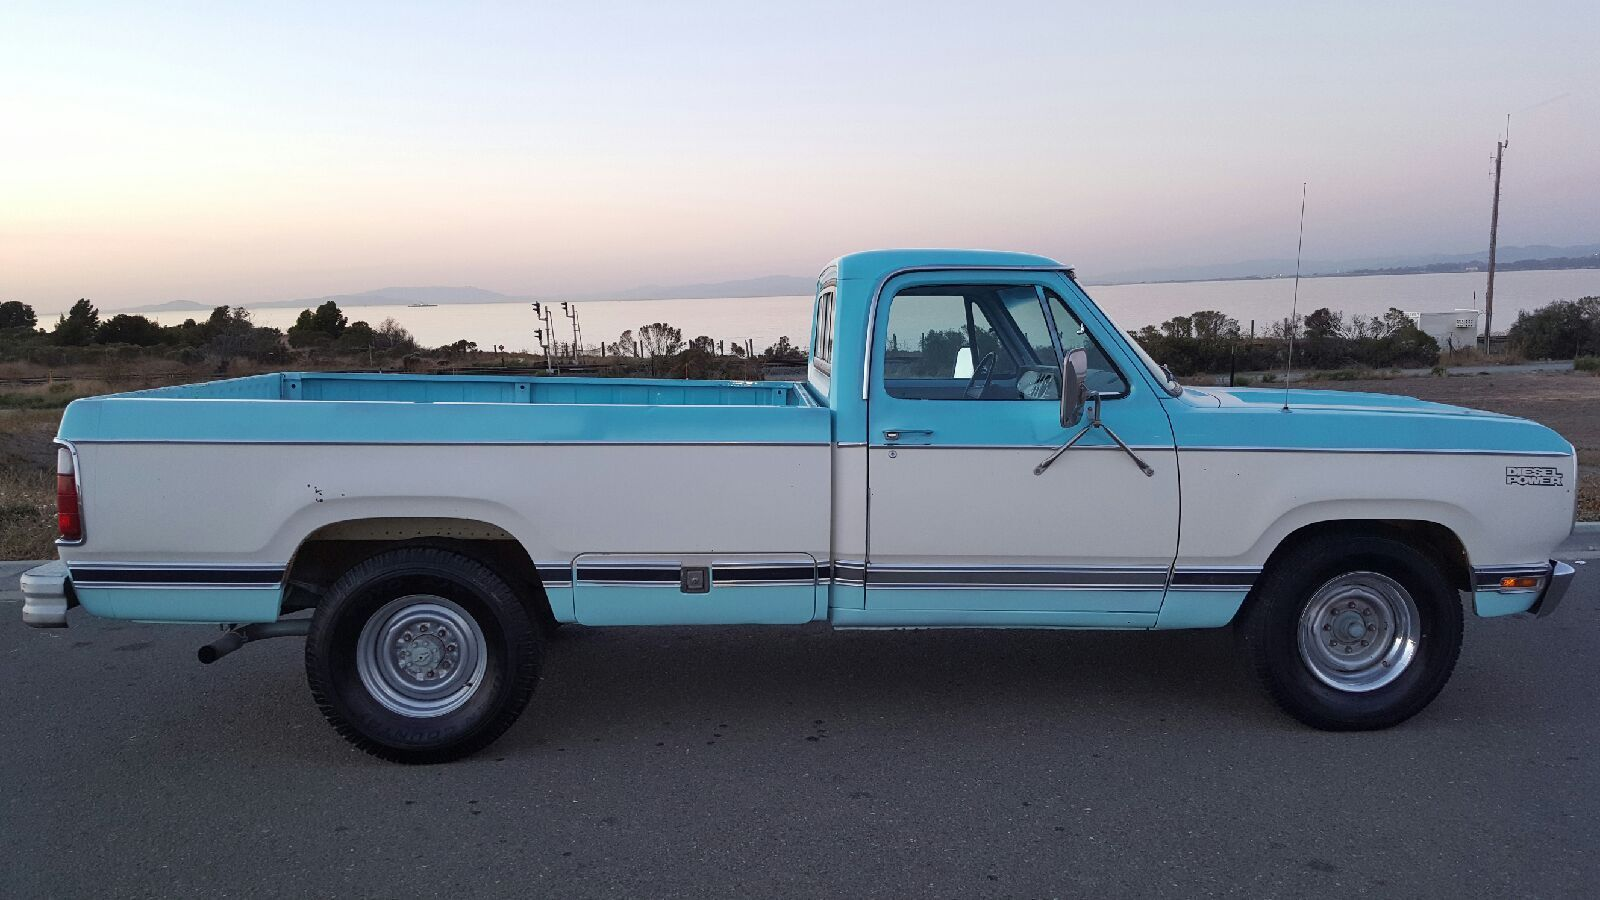 Automotive history the case of the very rare 1978 dodge diesel pickup and the missing diesel van